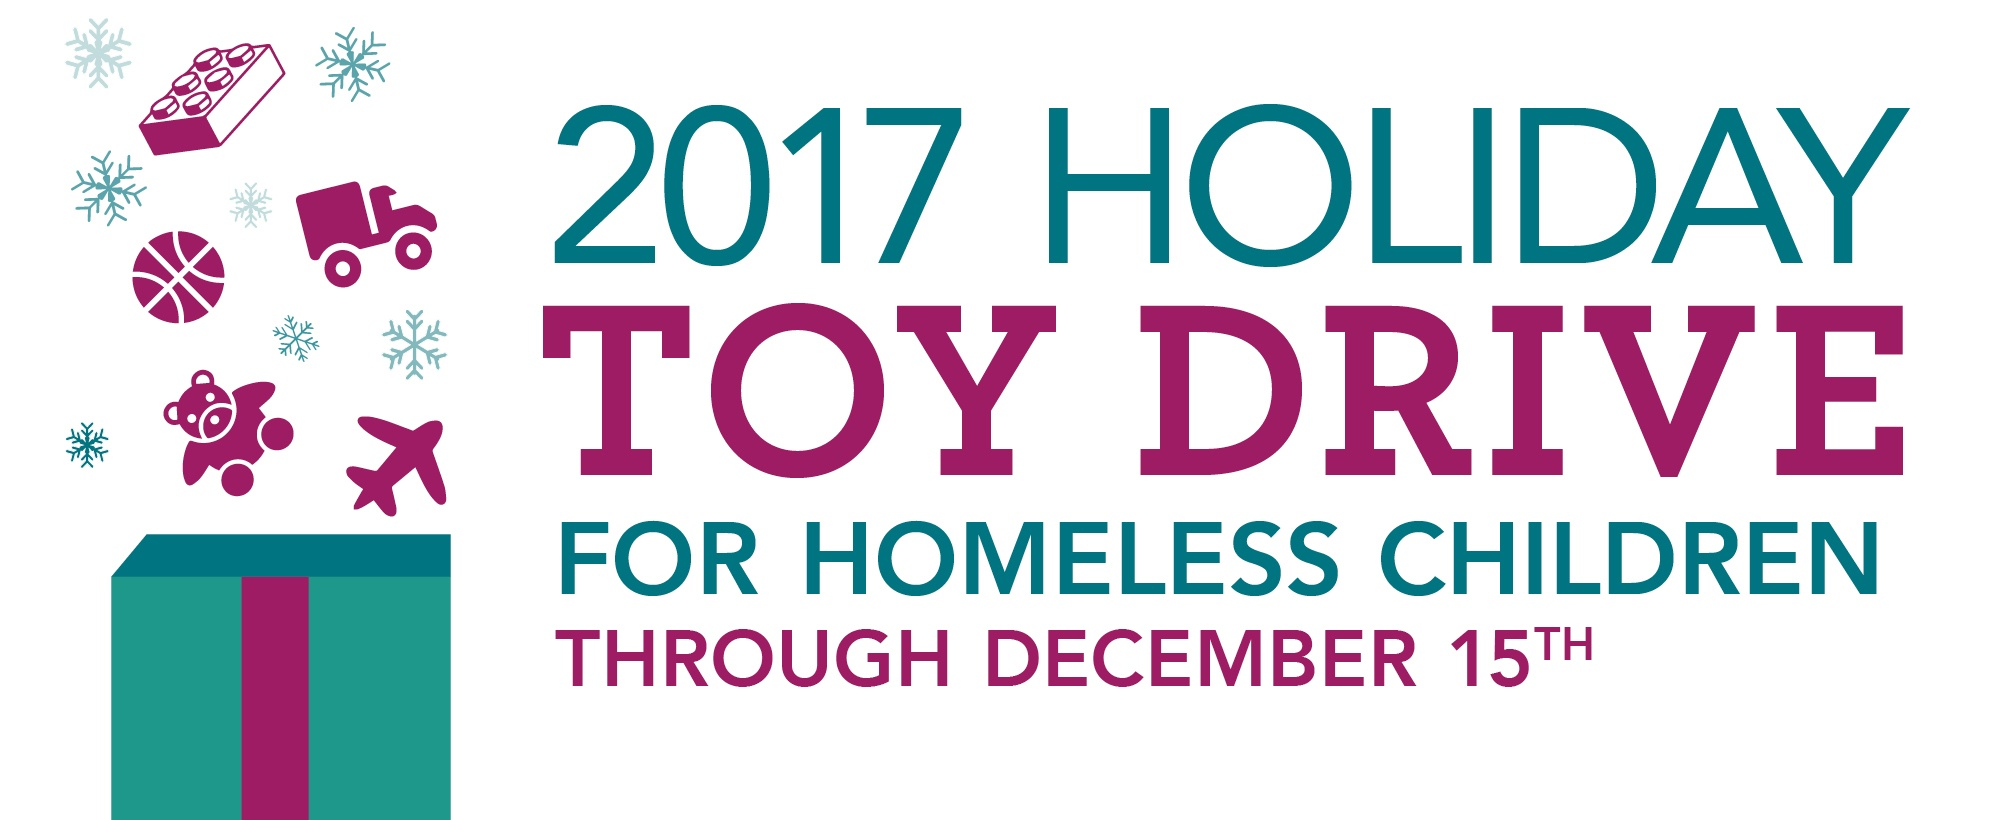 2017 Holiday Toy Drive